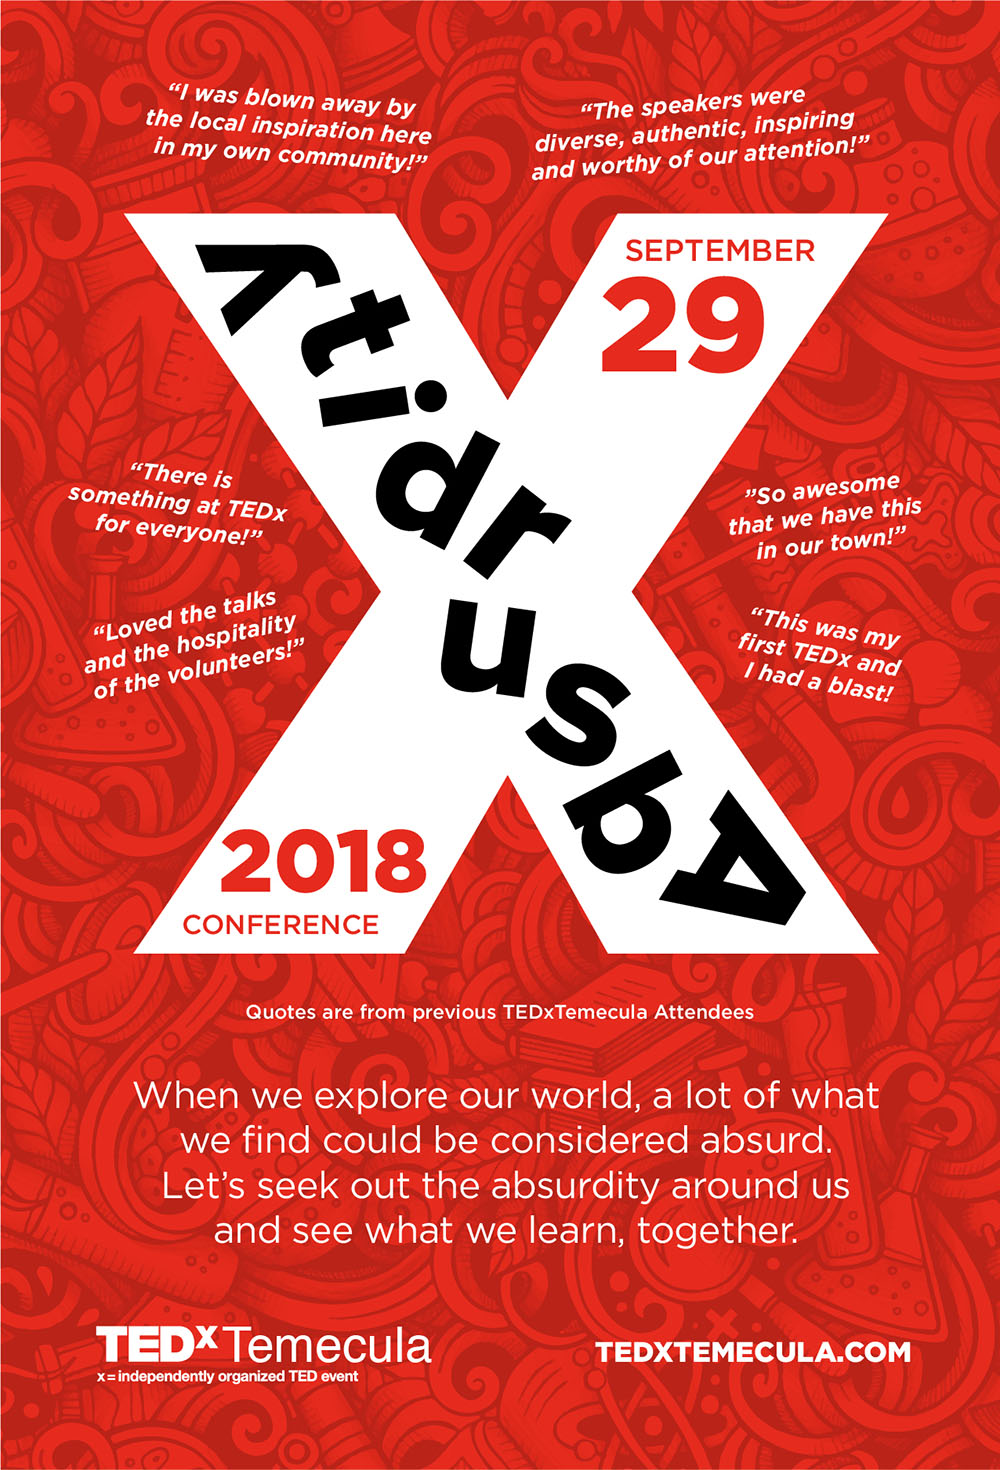 TEDxTemecula 2018 is all about Absurdity!